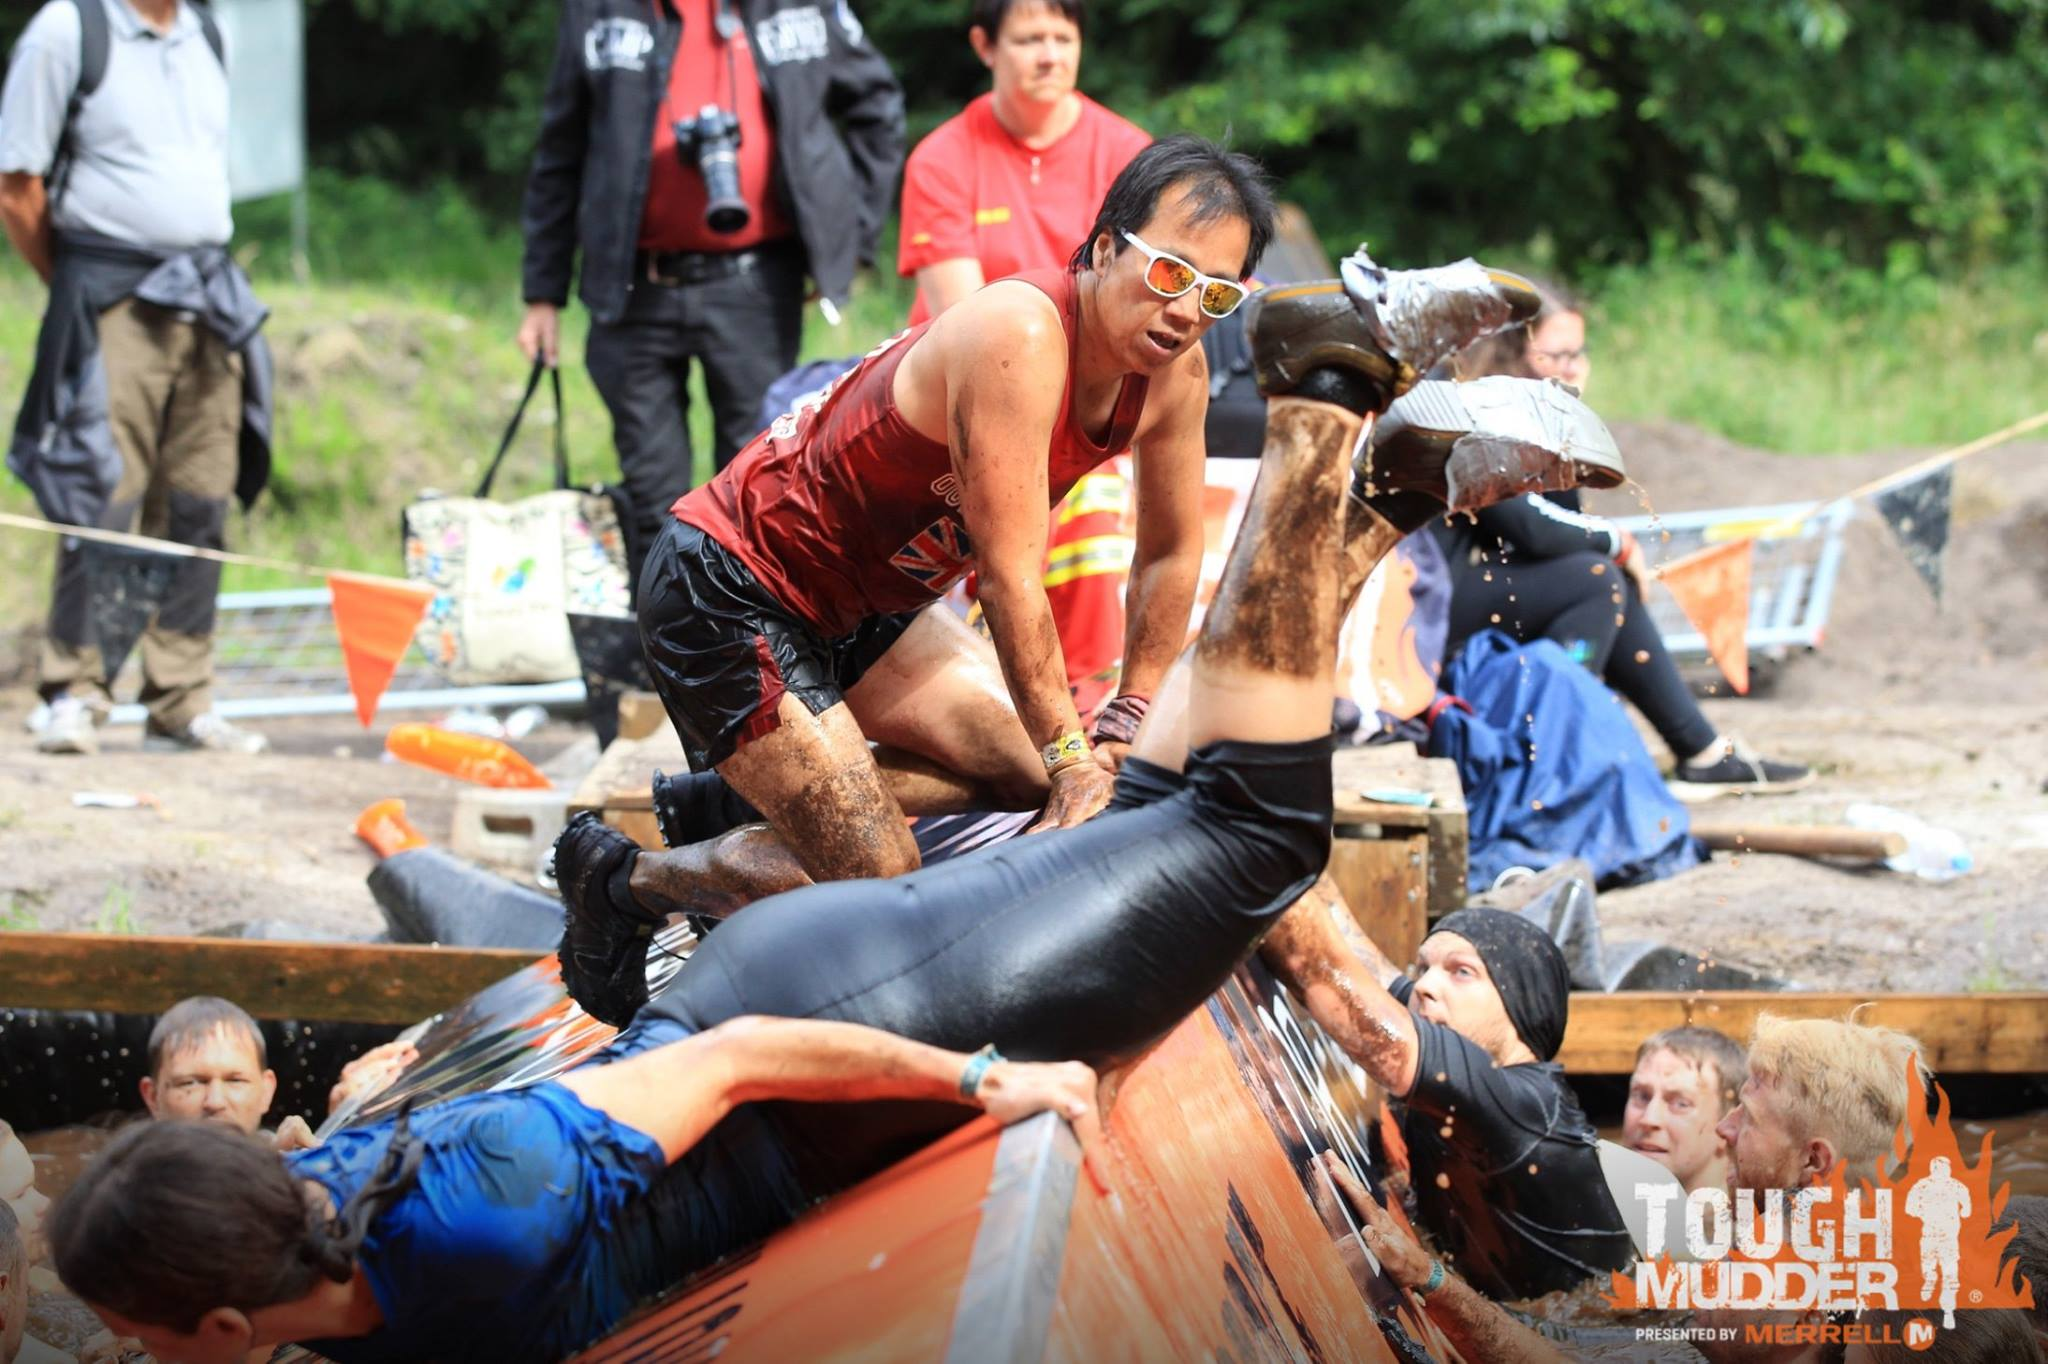 Tough Mudder North Germany BlockNess 2